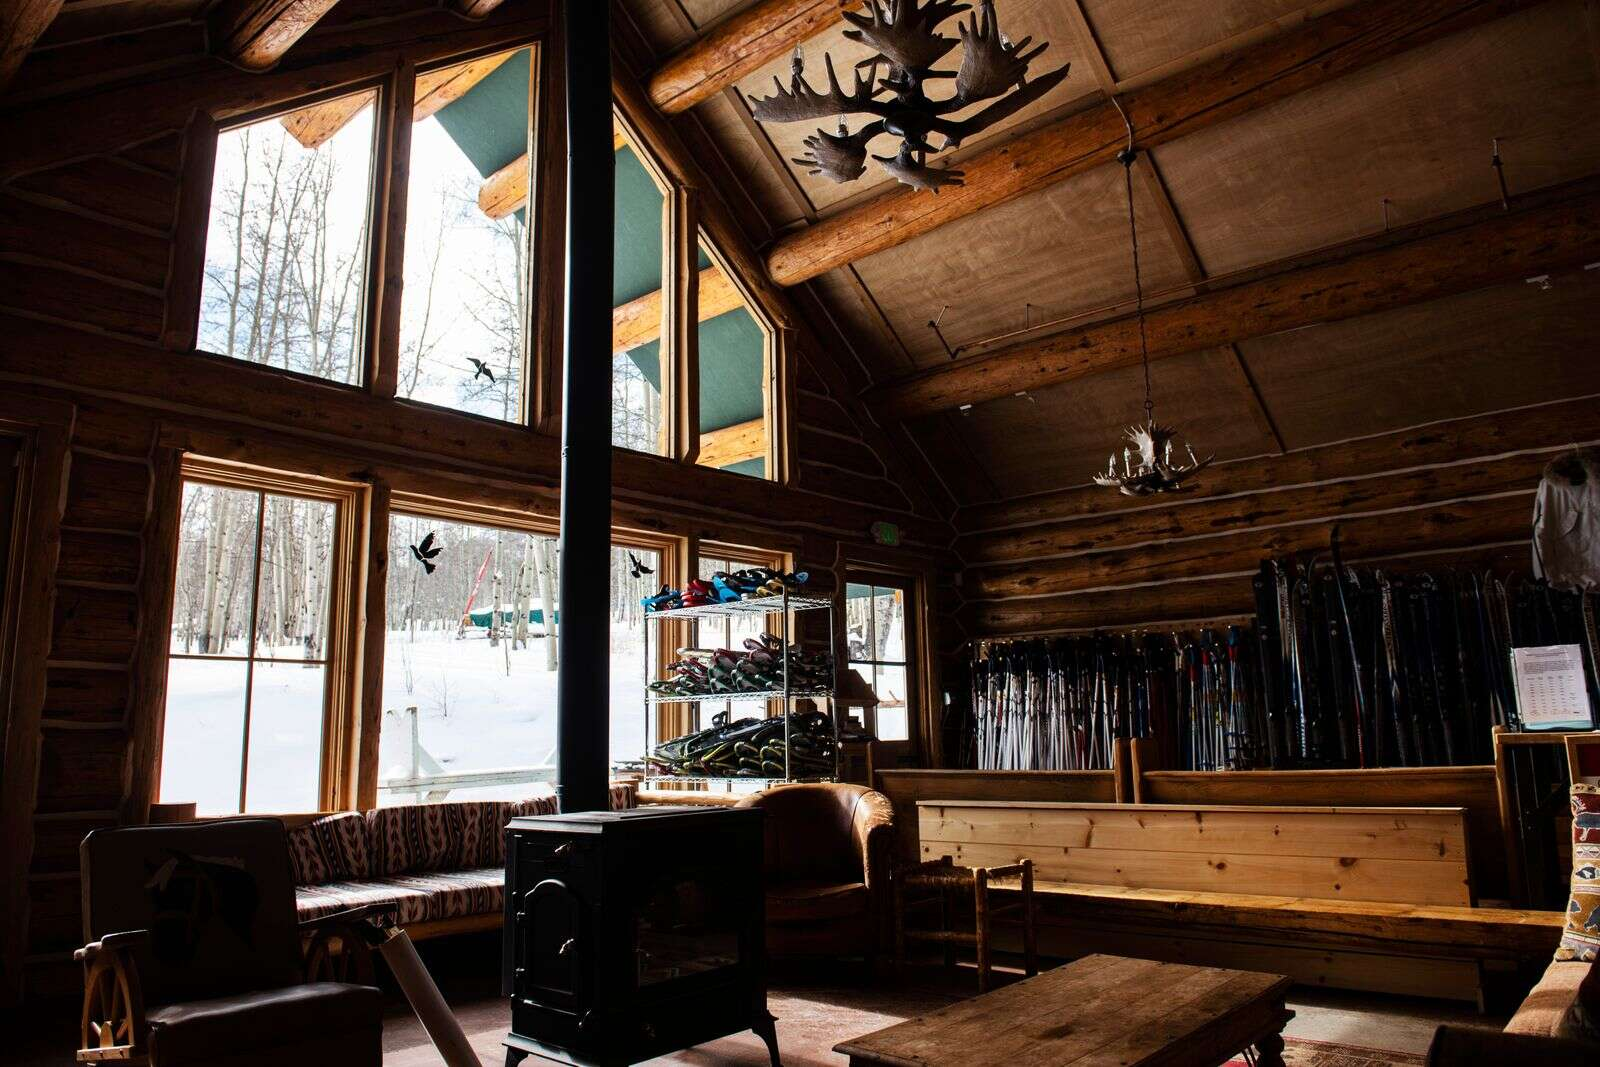 A quiet King Cabin before the opening of Ashcroft Ski Touring for its 49th season. (Kelsey Brunner/The Aspen Times)